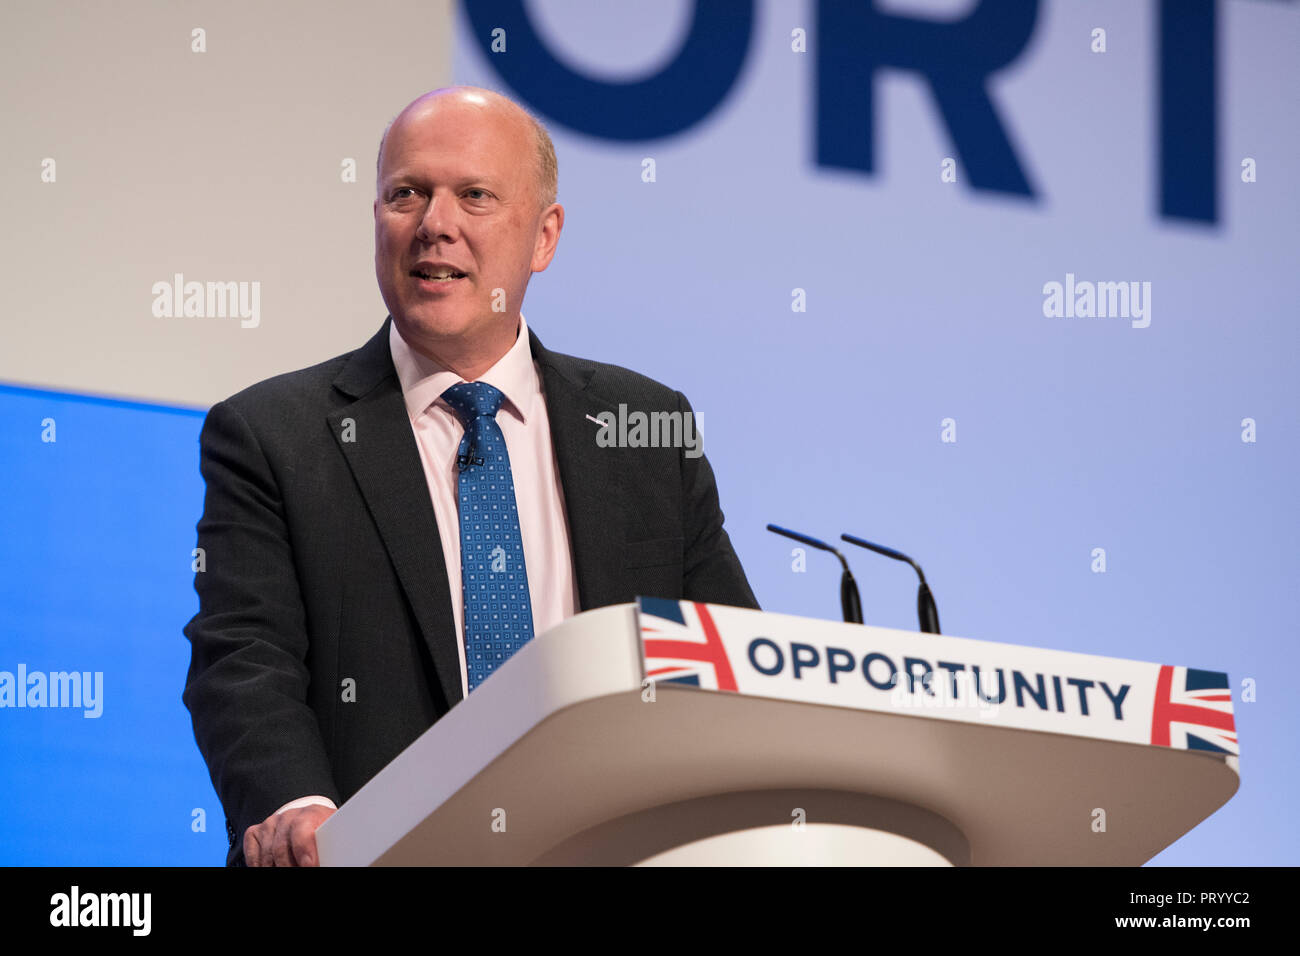 1 October 2018 - Transport Secretary Chris Grayling speech at Conservative Party Conference 2018. - Stock Image